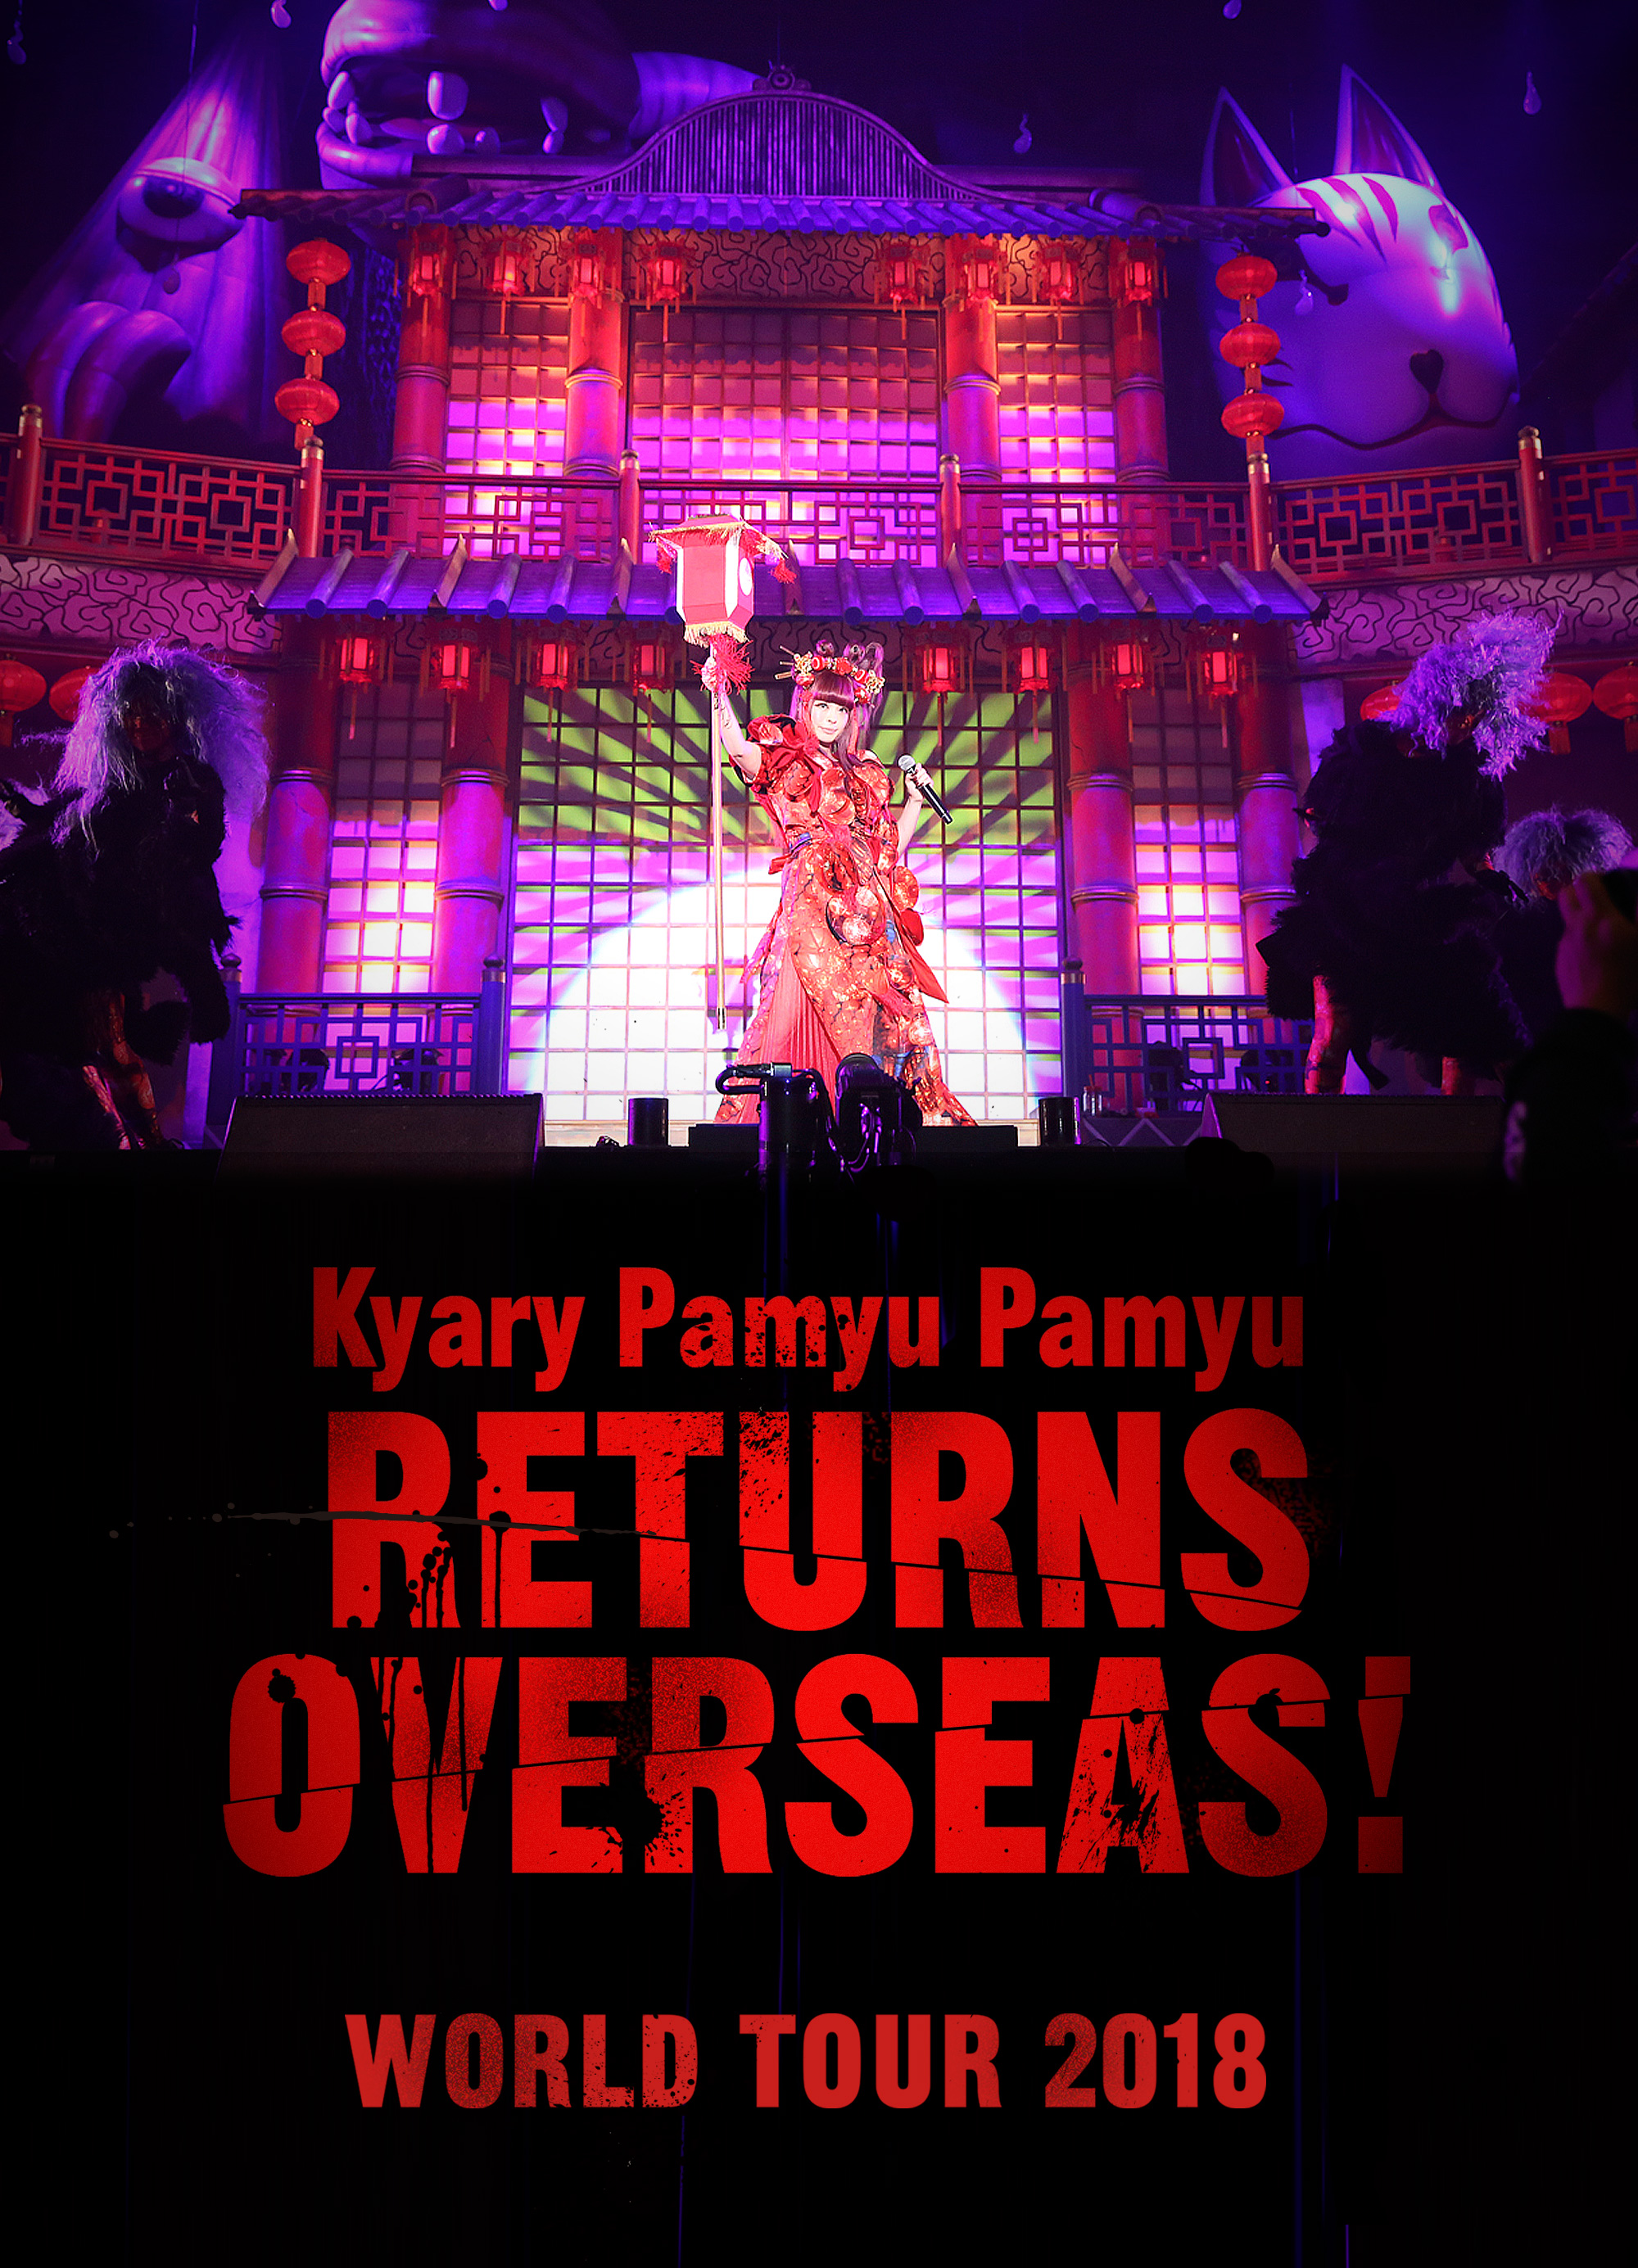 KYARY PAMYU PAMYU RETURN OVERSEA THE SPOOKY OBAKEYASHIKI -PUMPKINS STRIKE BACK-